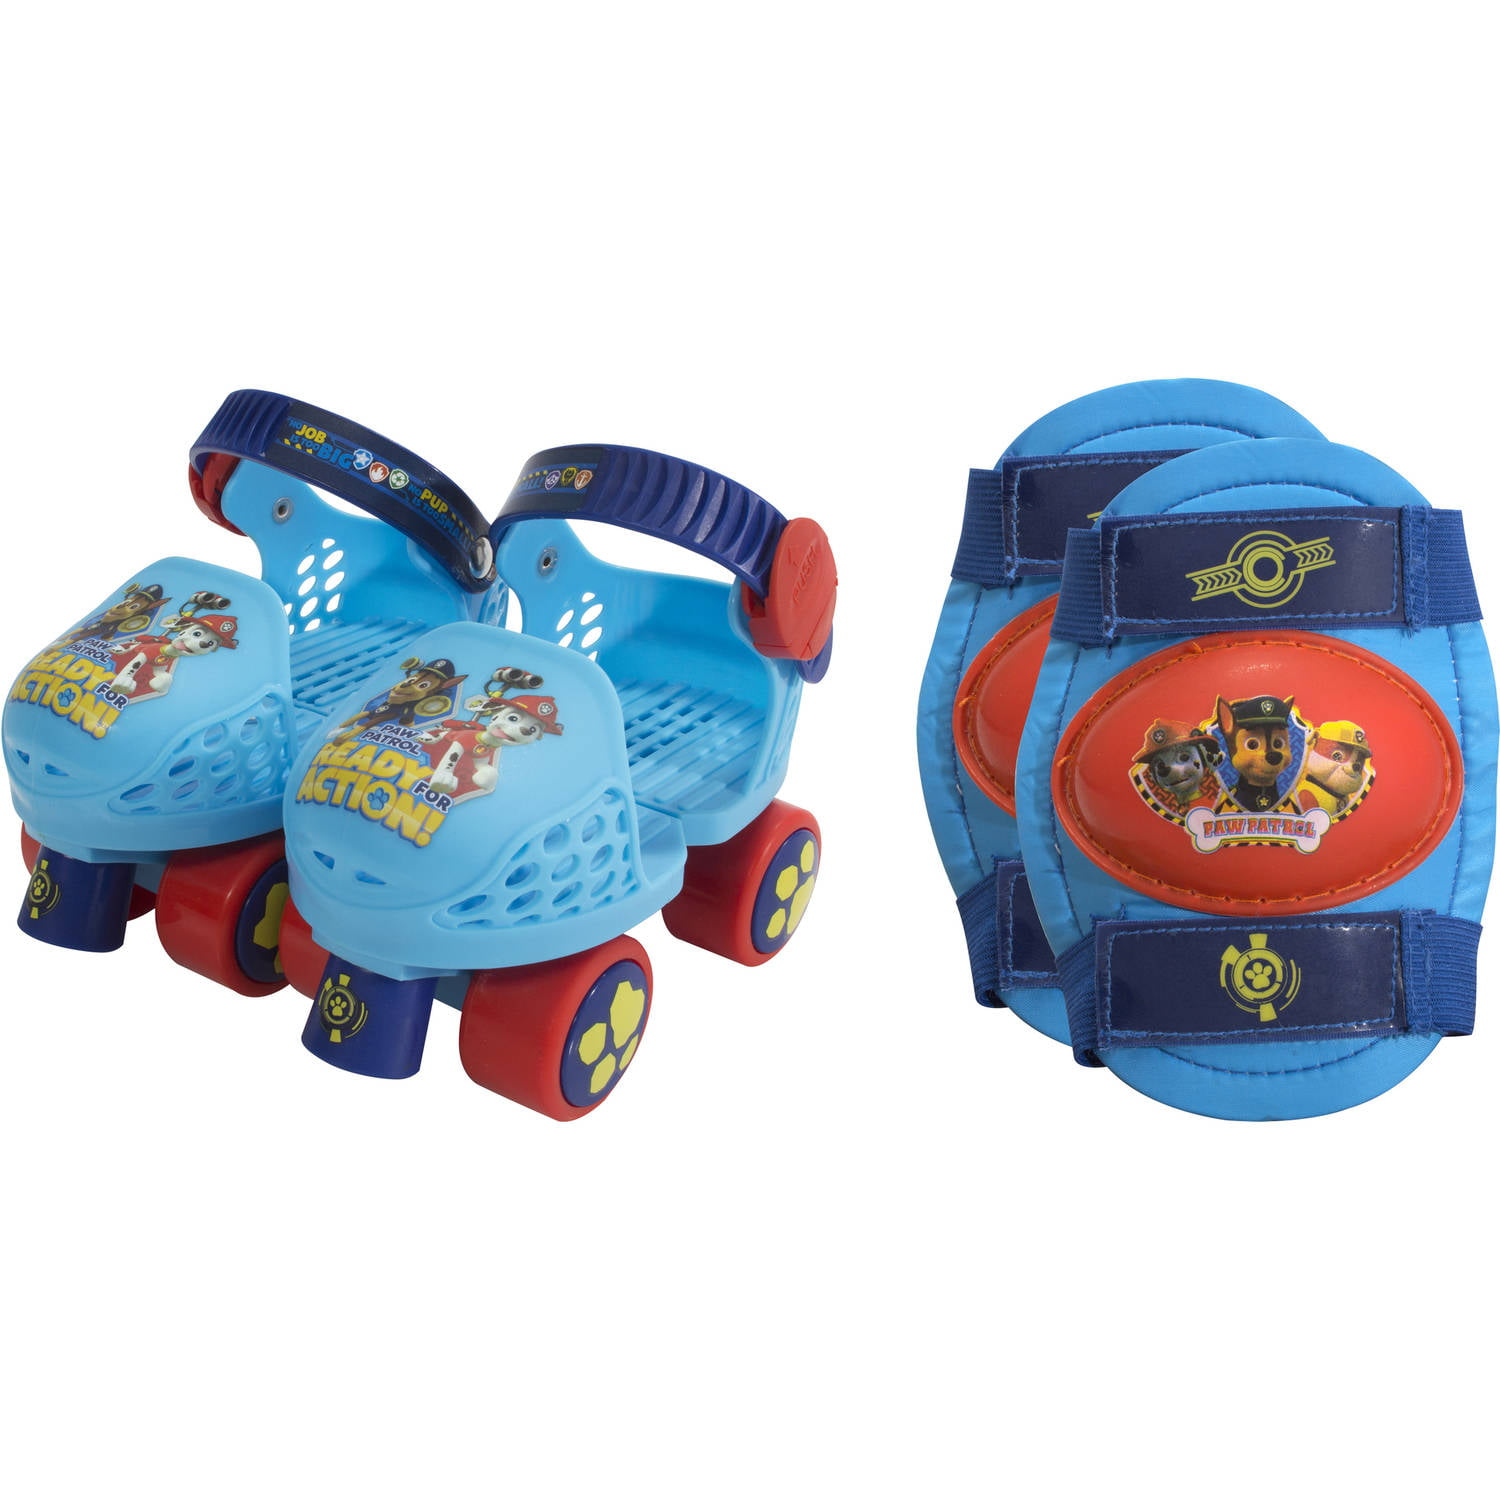 Paw Patrol Kids' Roller Skates with Knee Pads by Bravo Sports